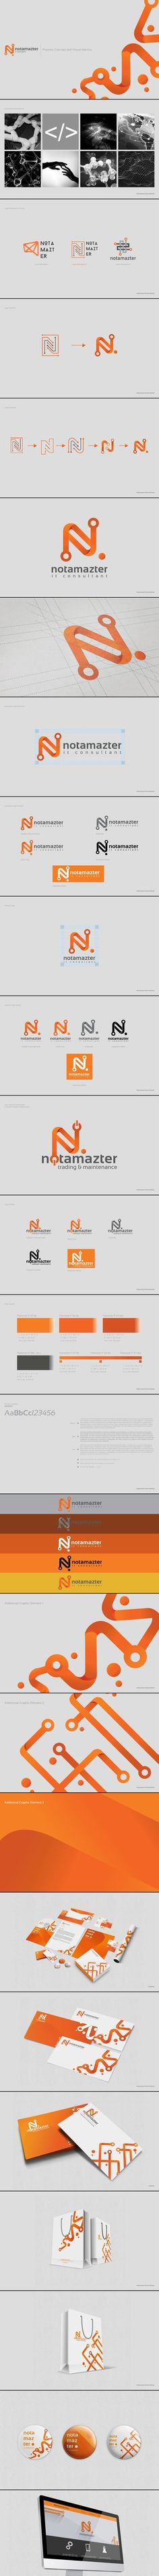 Cool Brand Identity Design on the Internet. Notamazter. #branding #brandidentity #identitydesign